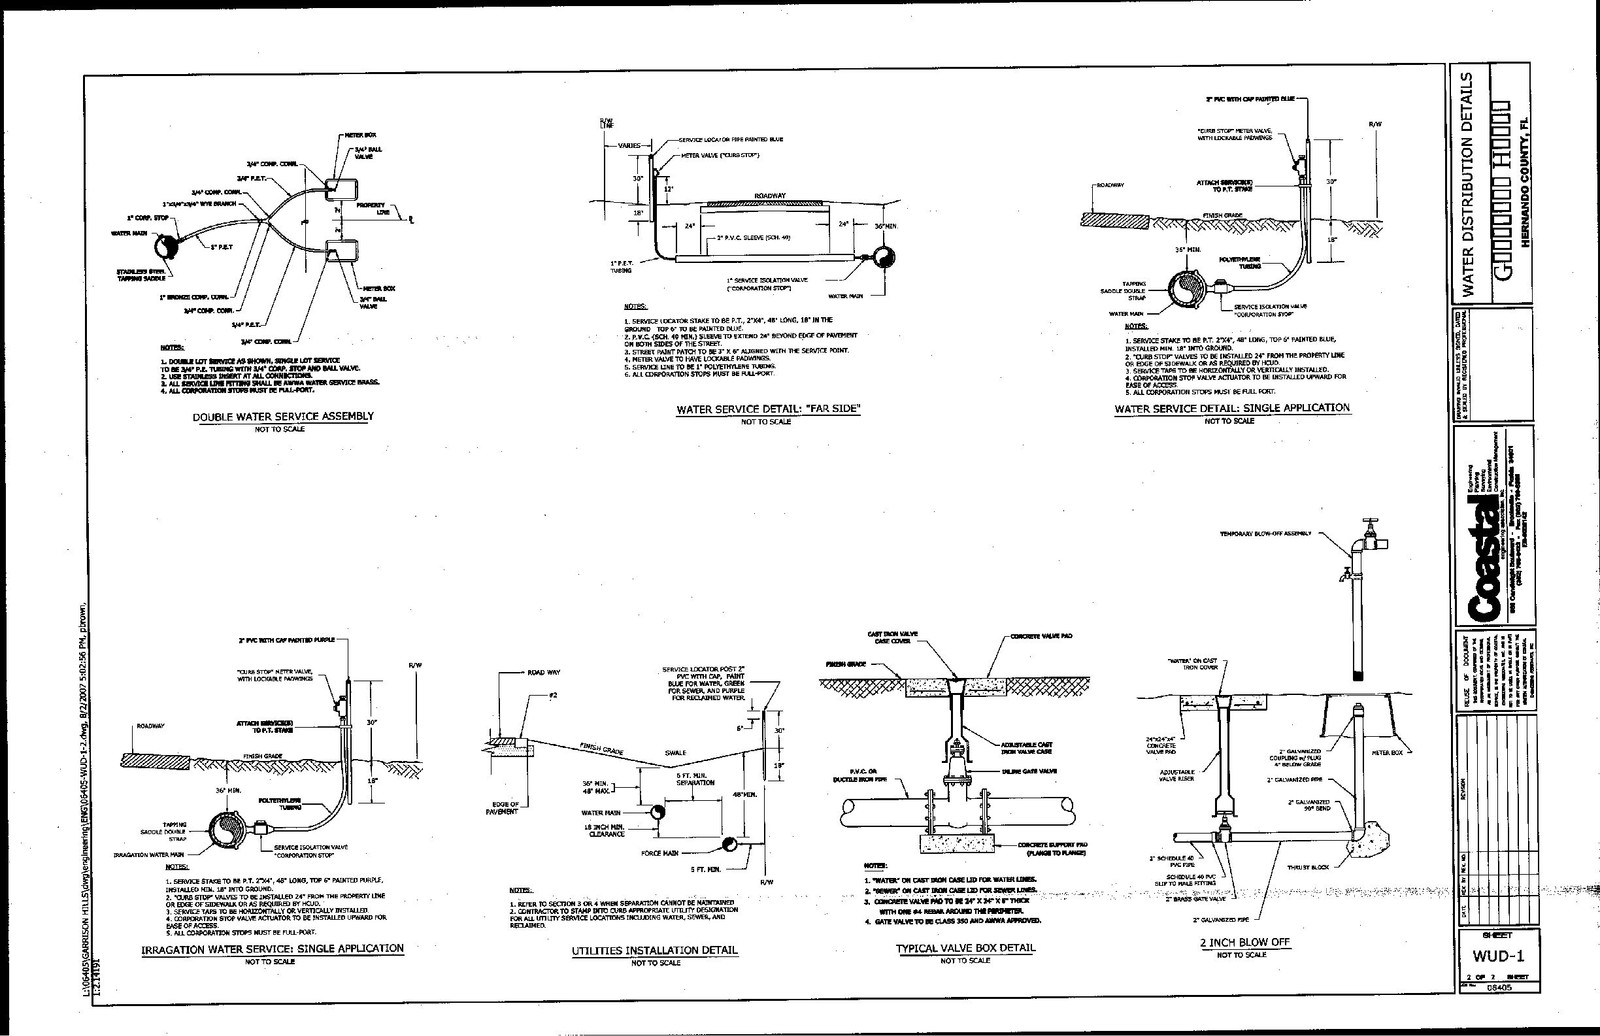 Lookupland Approved Residental Development Site Cat 3034 Engine Wiring Diagram Page 35